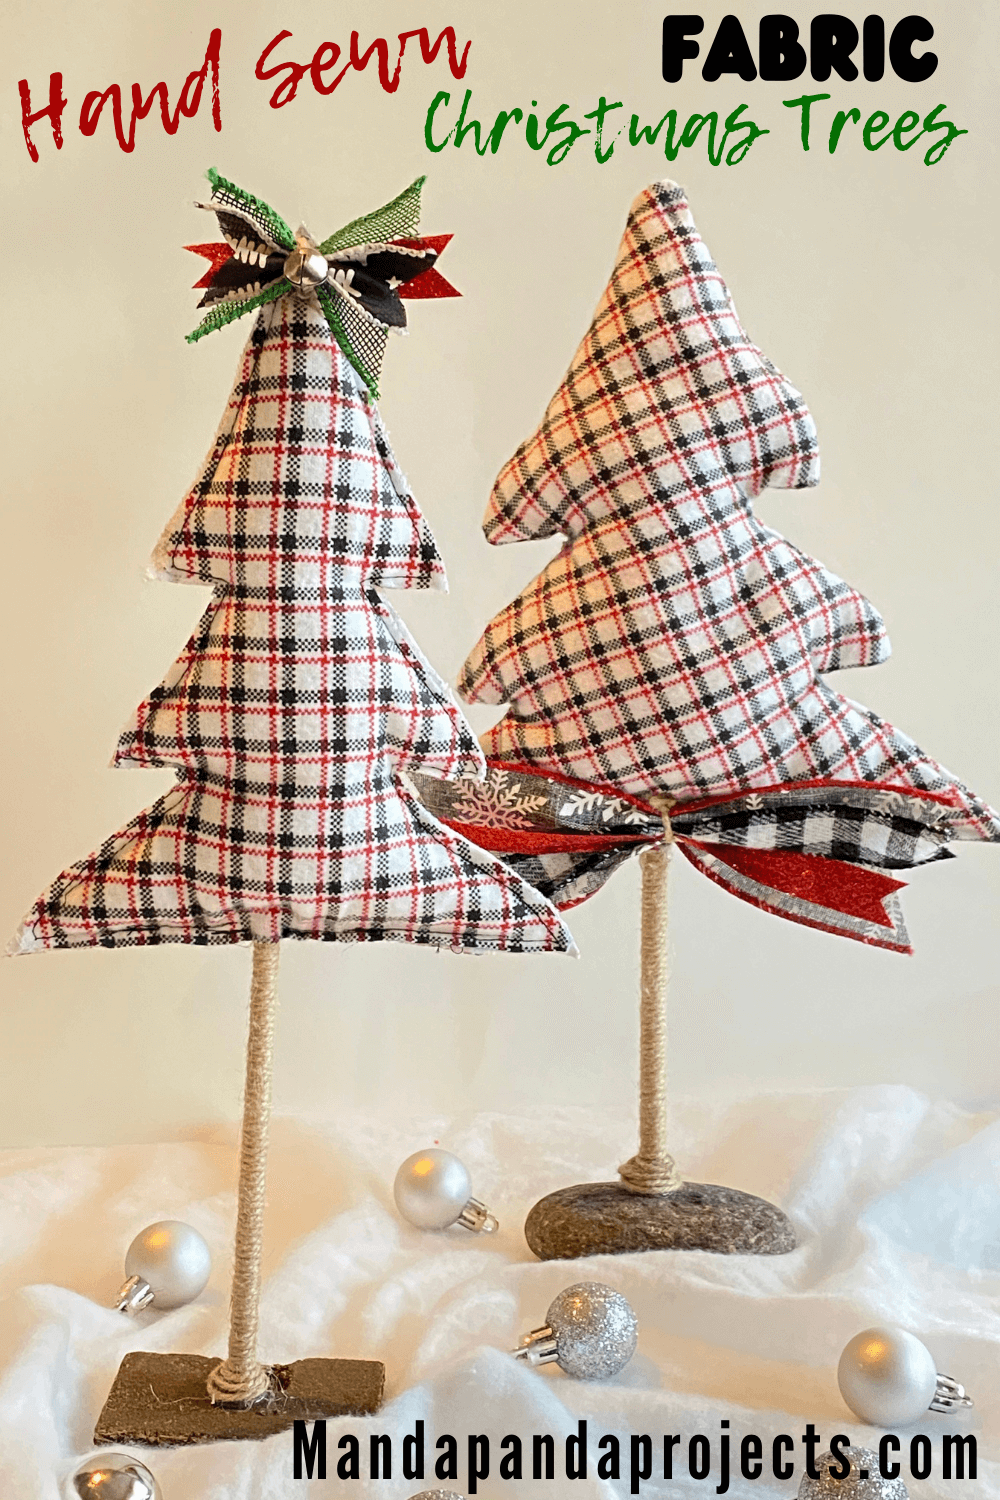 Easy Hand Sewn Fabric Christmas Trees With Twine Trunk Fabric Christmas Trees Easter Tree Decorations Easter Tree Diy